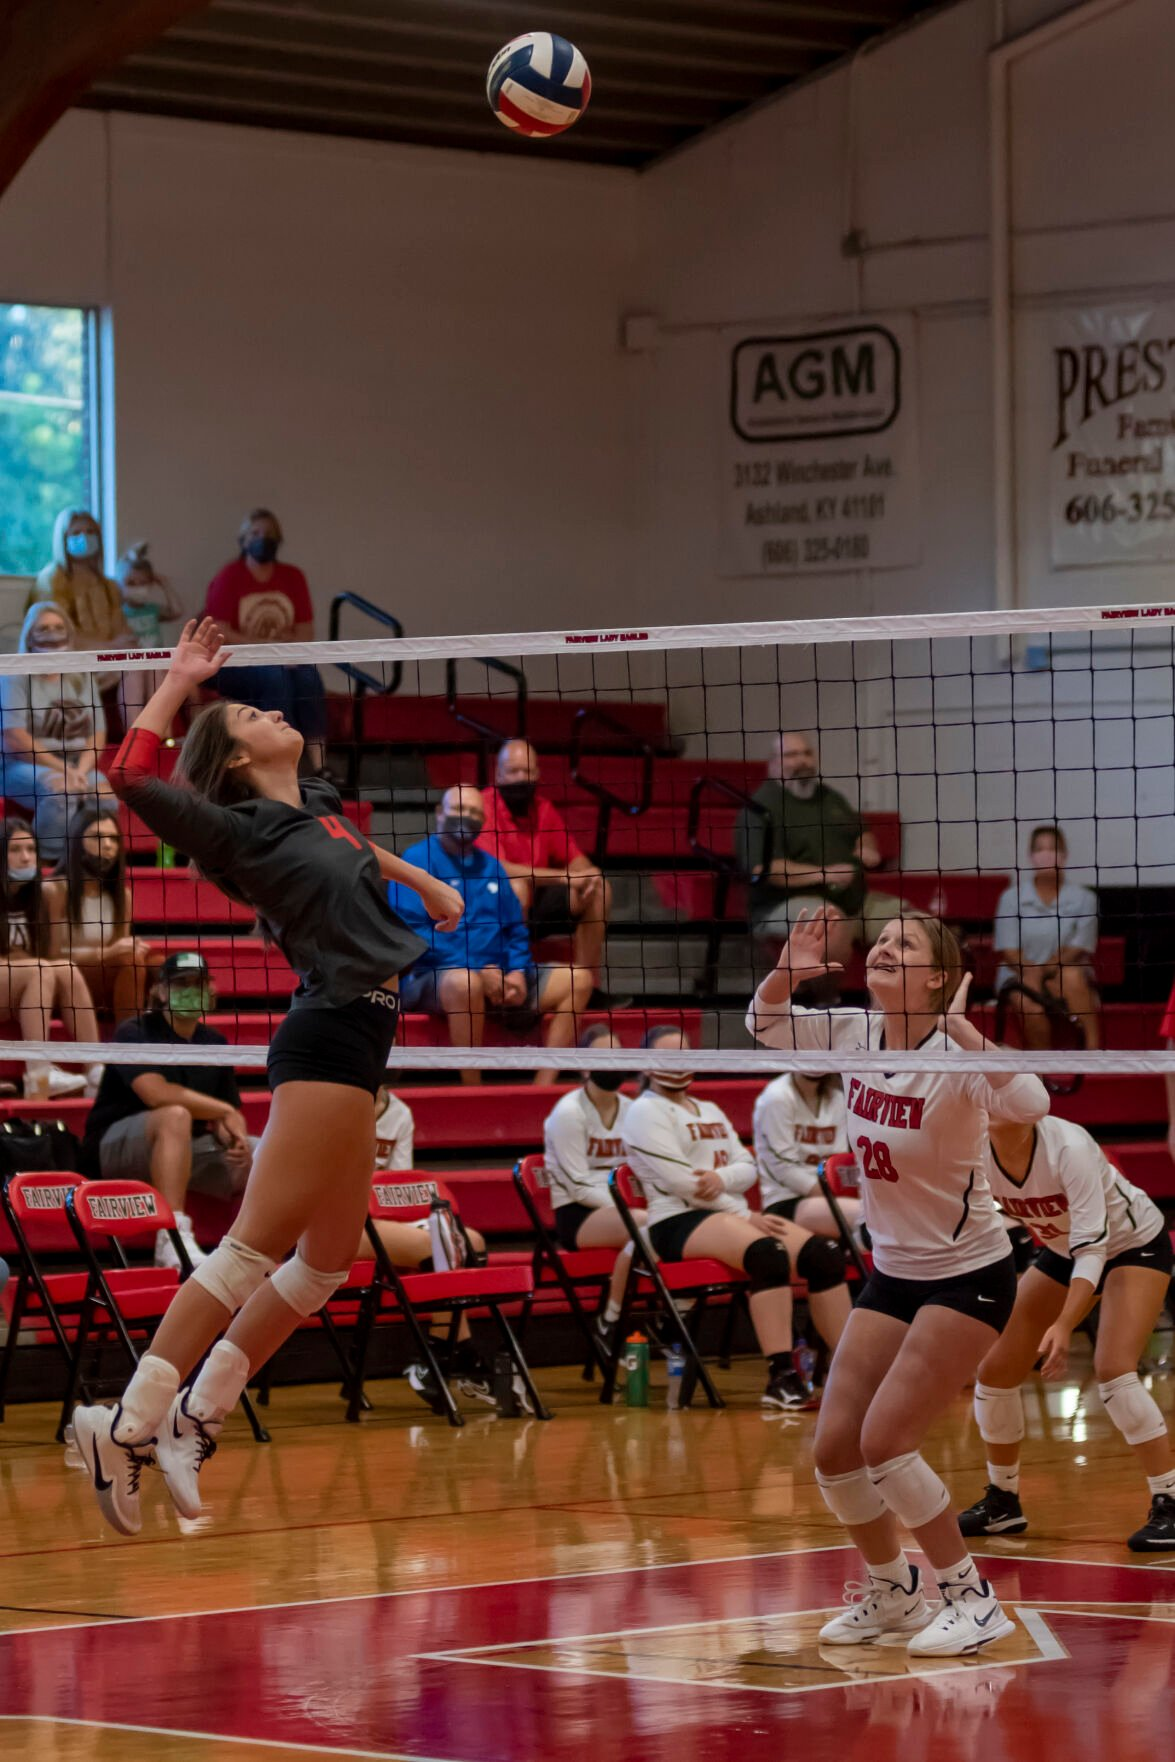 Emma Sparks rises up for a kill at the net.JPG